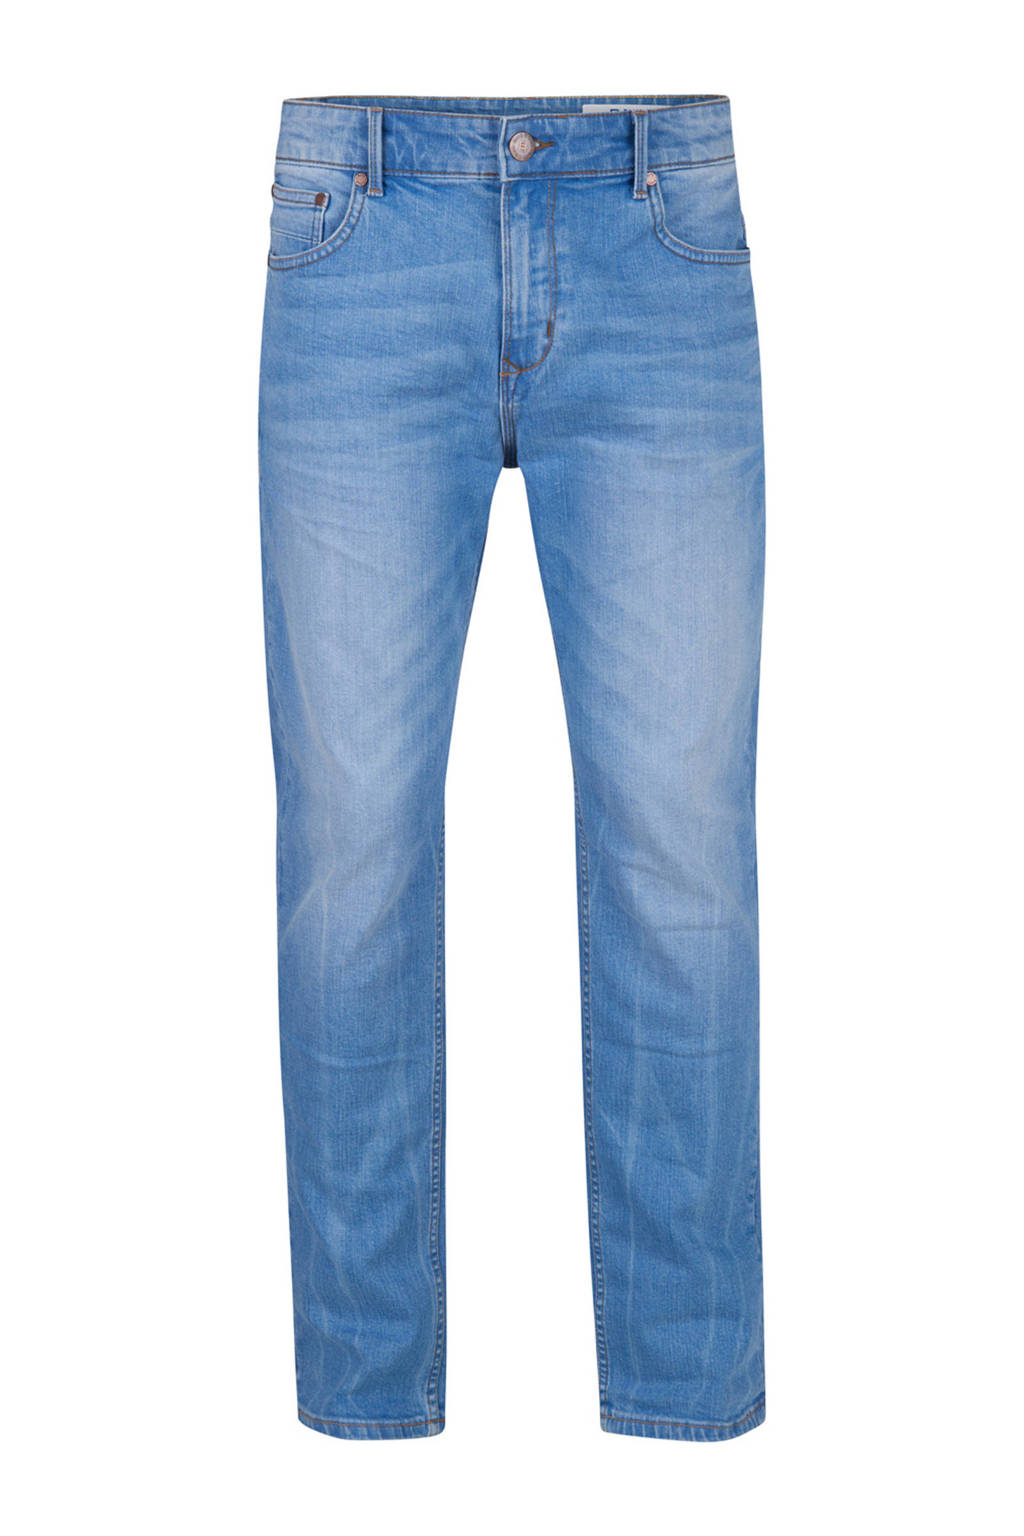 WE Fashion Blue Ridge  tapered tapered fit jeans, Light denim